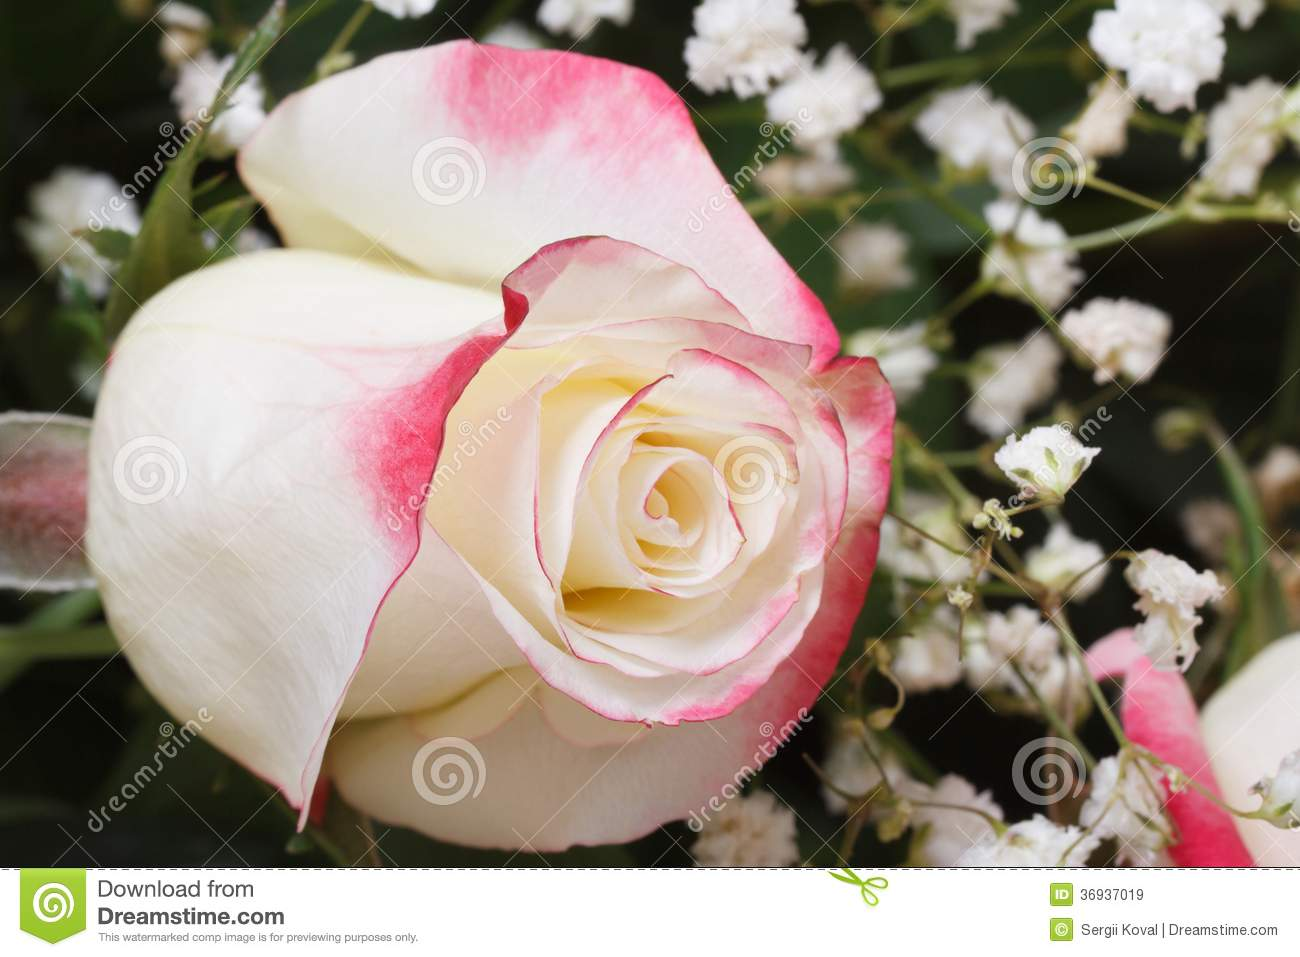 White rose with pink edges of the petals with gypsophila stock image white rose with pink edges of the petals with gypsophila mightylinksfo